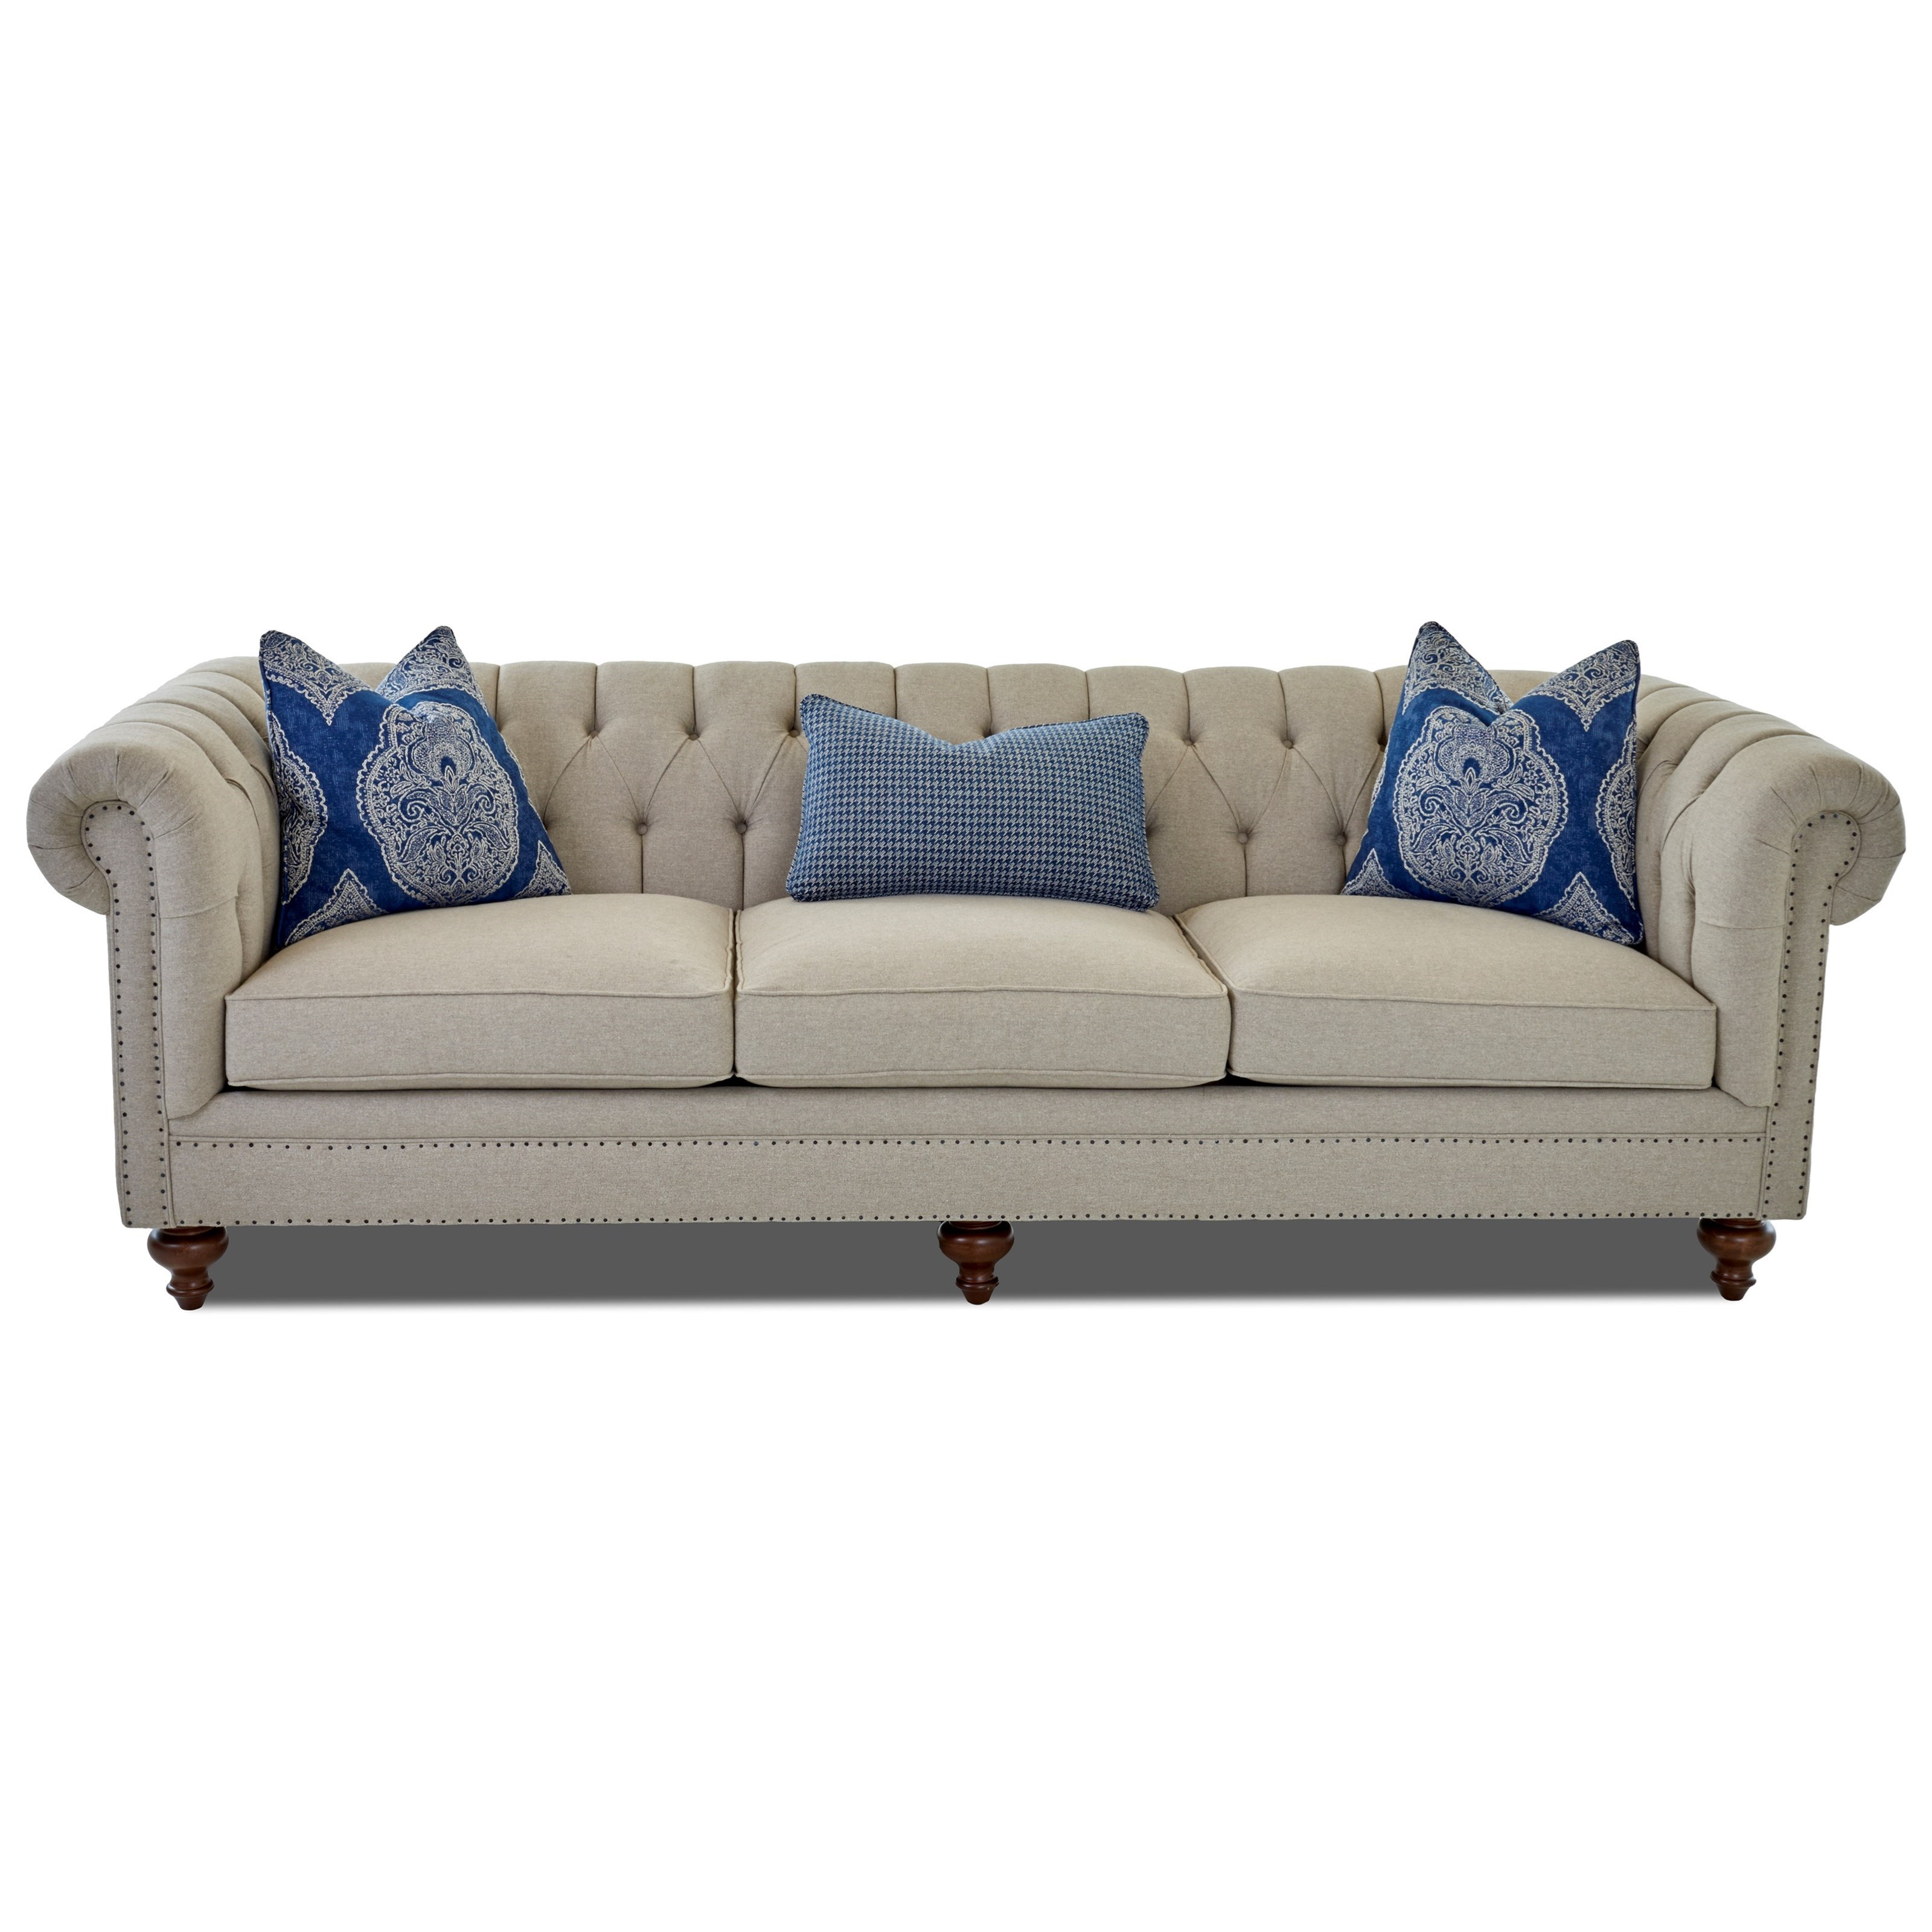 Charlotte Extra Large Sofa by Klaussner at Johnny Janosik